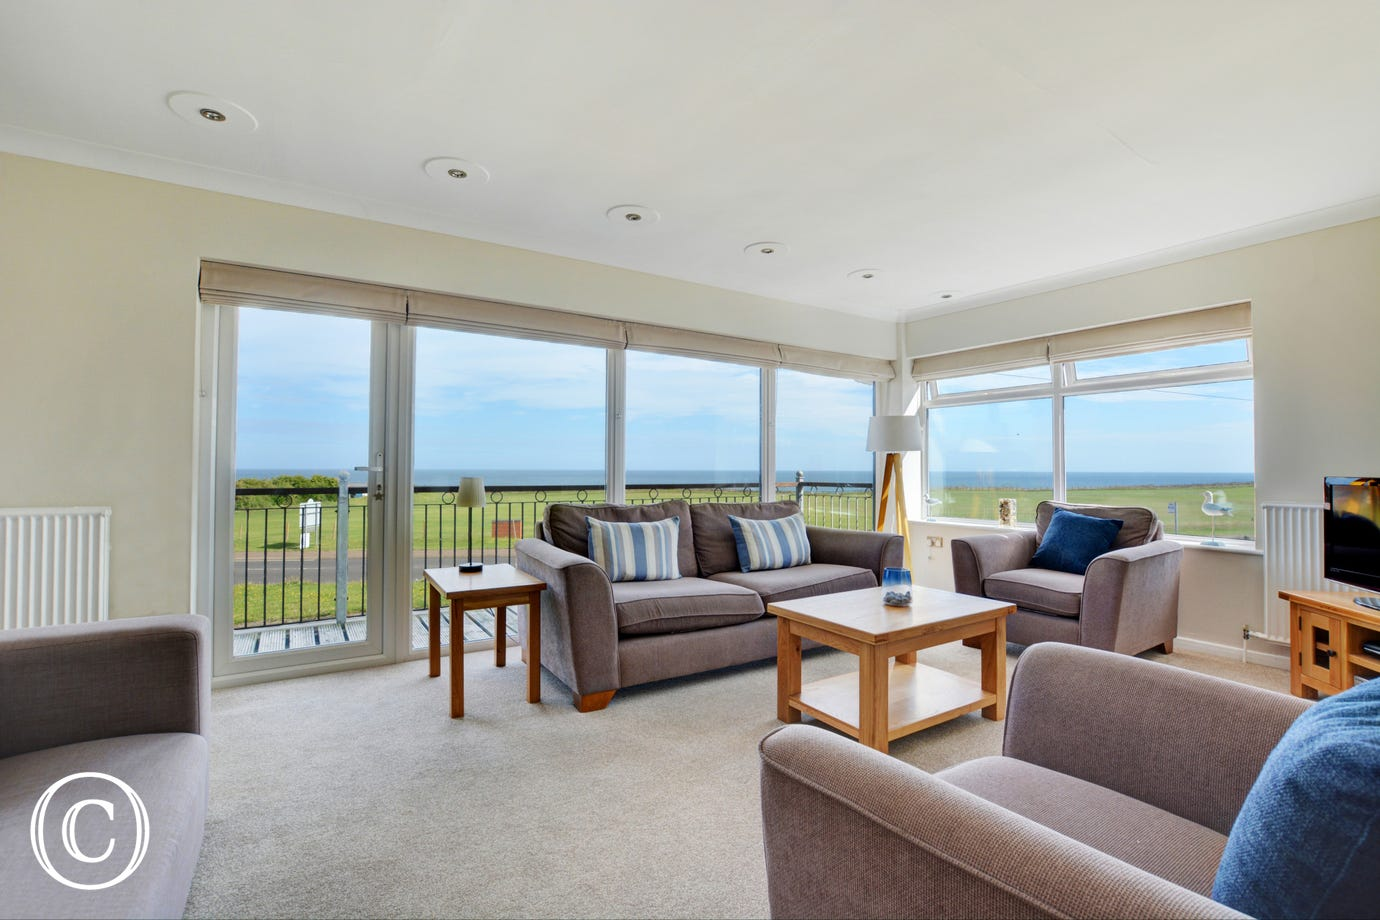 First floor very well furnished sitting room, tastefully decorated with amazing views